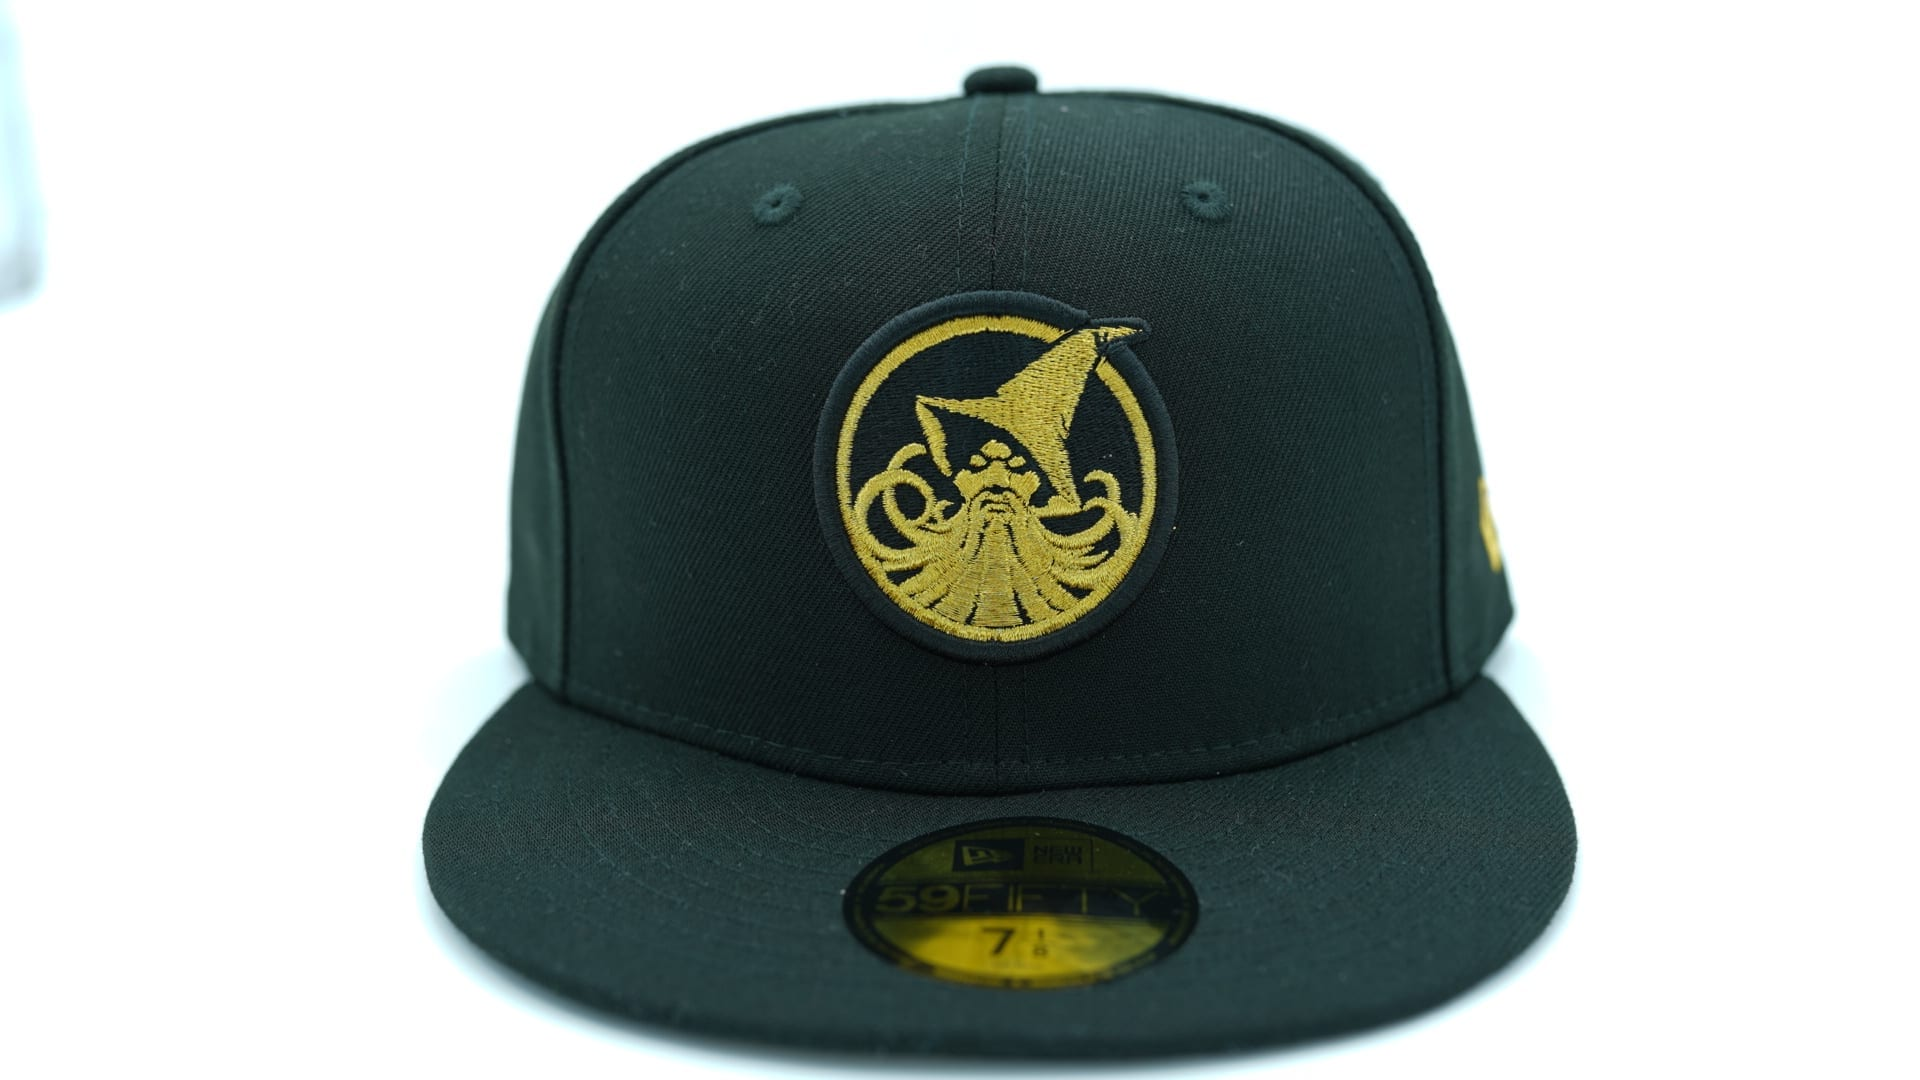 Jacksonville Jaguars Pink Hook Black/Graphite 59Fifty Fitted Cap by NEW ERA x NFL